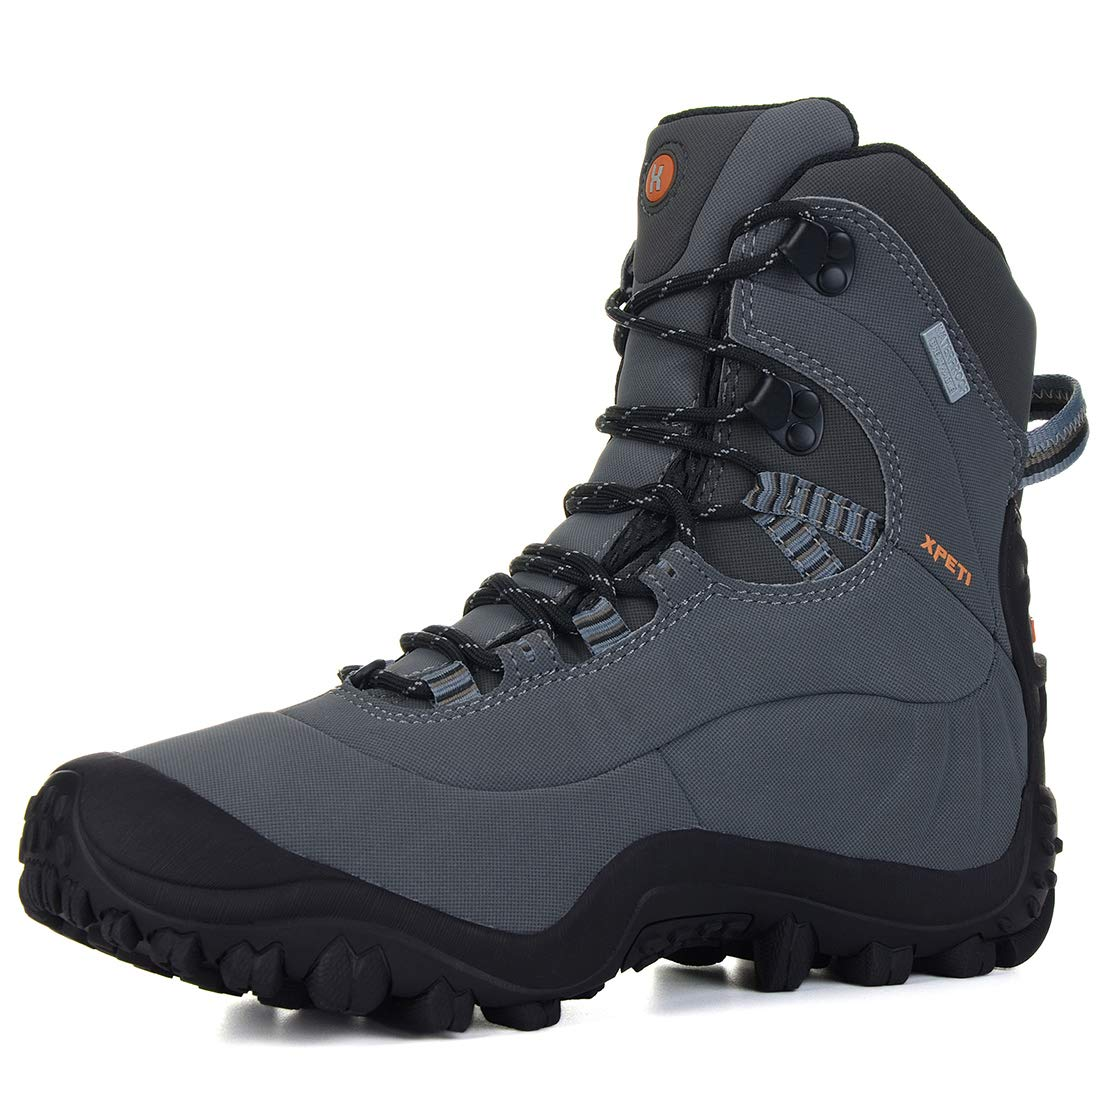 عکس Manfen Men's Mid Hiking Boot Waterproof Hunting Outdoor Boot Manfen Men's Thermator Mid-Rise Waterproof Hiking Boots Trekking Outdoor Boots manfen-men-s-mid-hiking-boot-waterproof-hunting-outdoor-boot